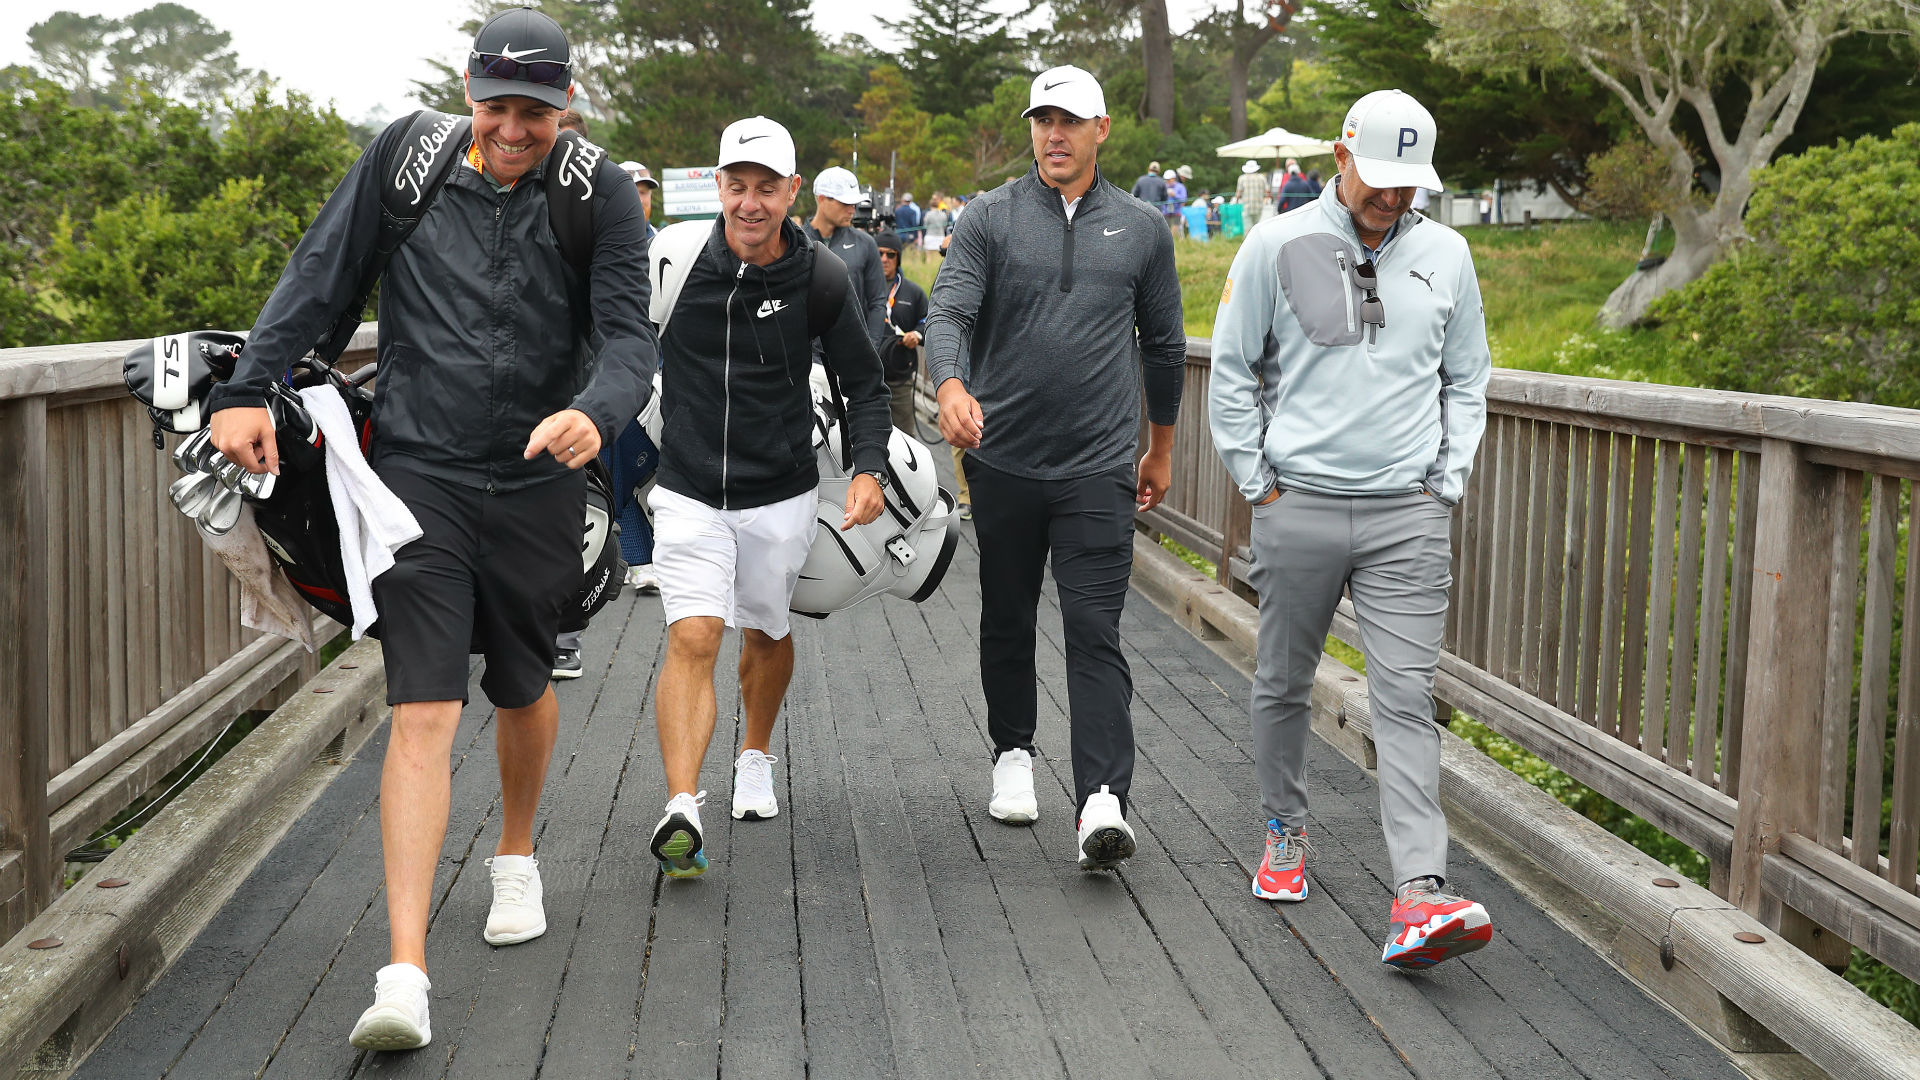 How Rory McIlroy, Brooks Koepka and others plan to attack Pebble Beach